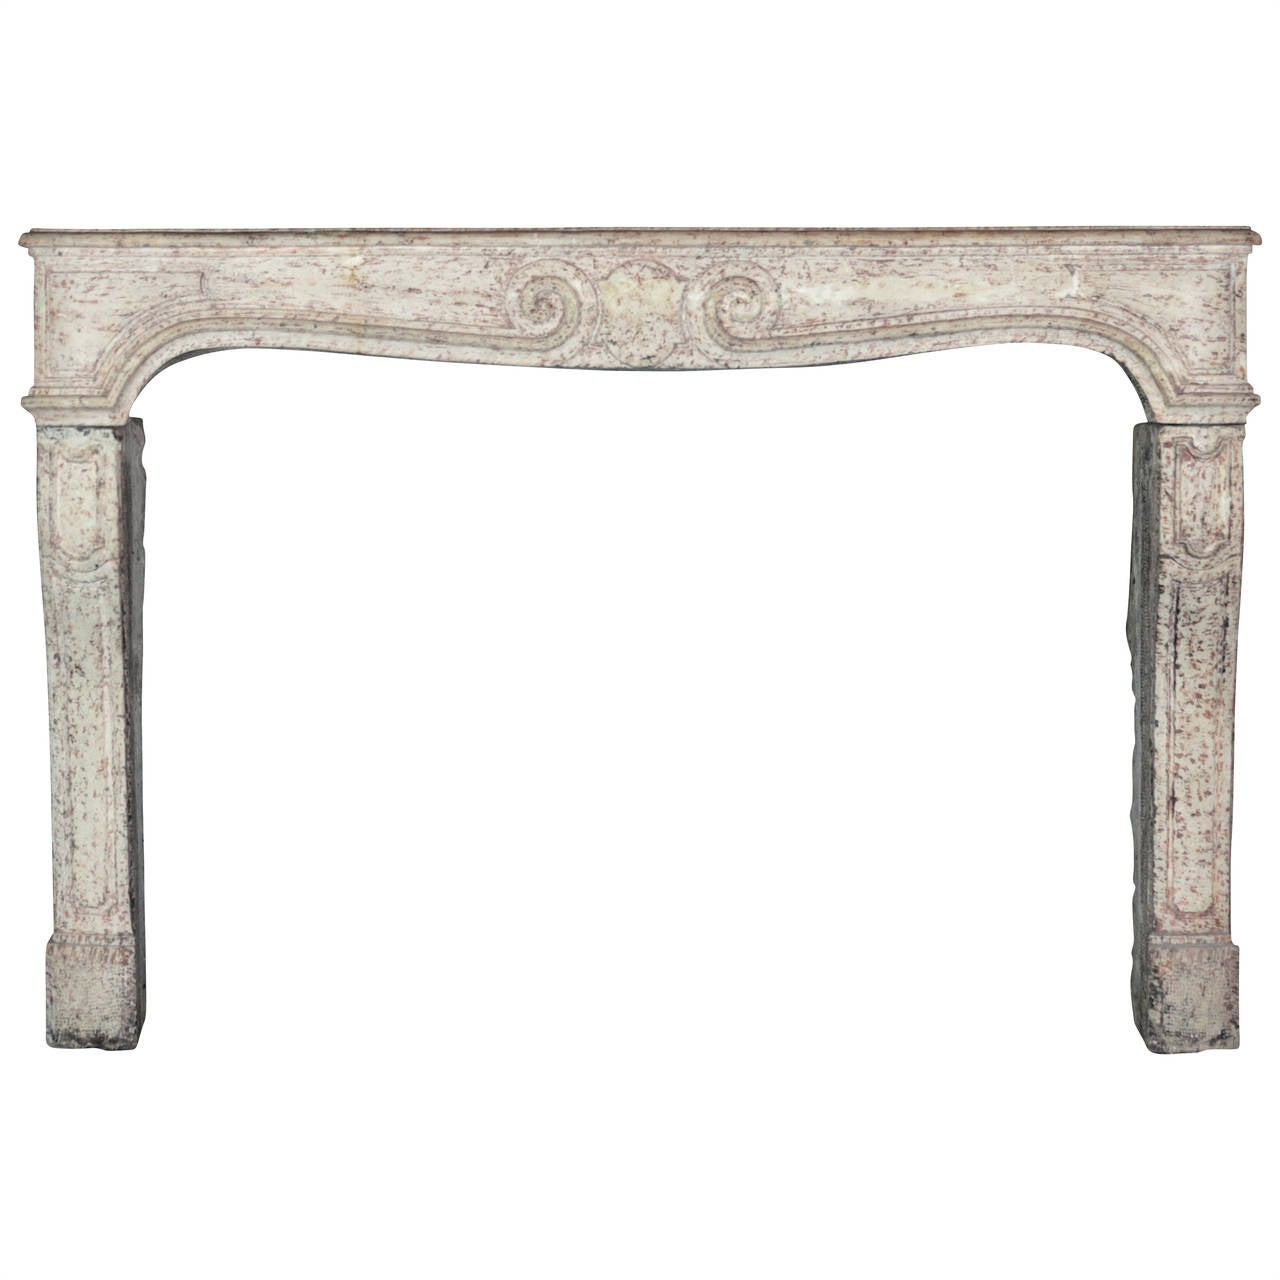 18th Century Stone antique Fireplace Mantel from the Louis XIV Period